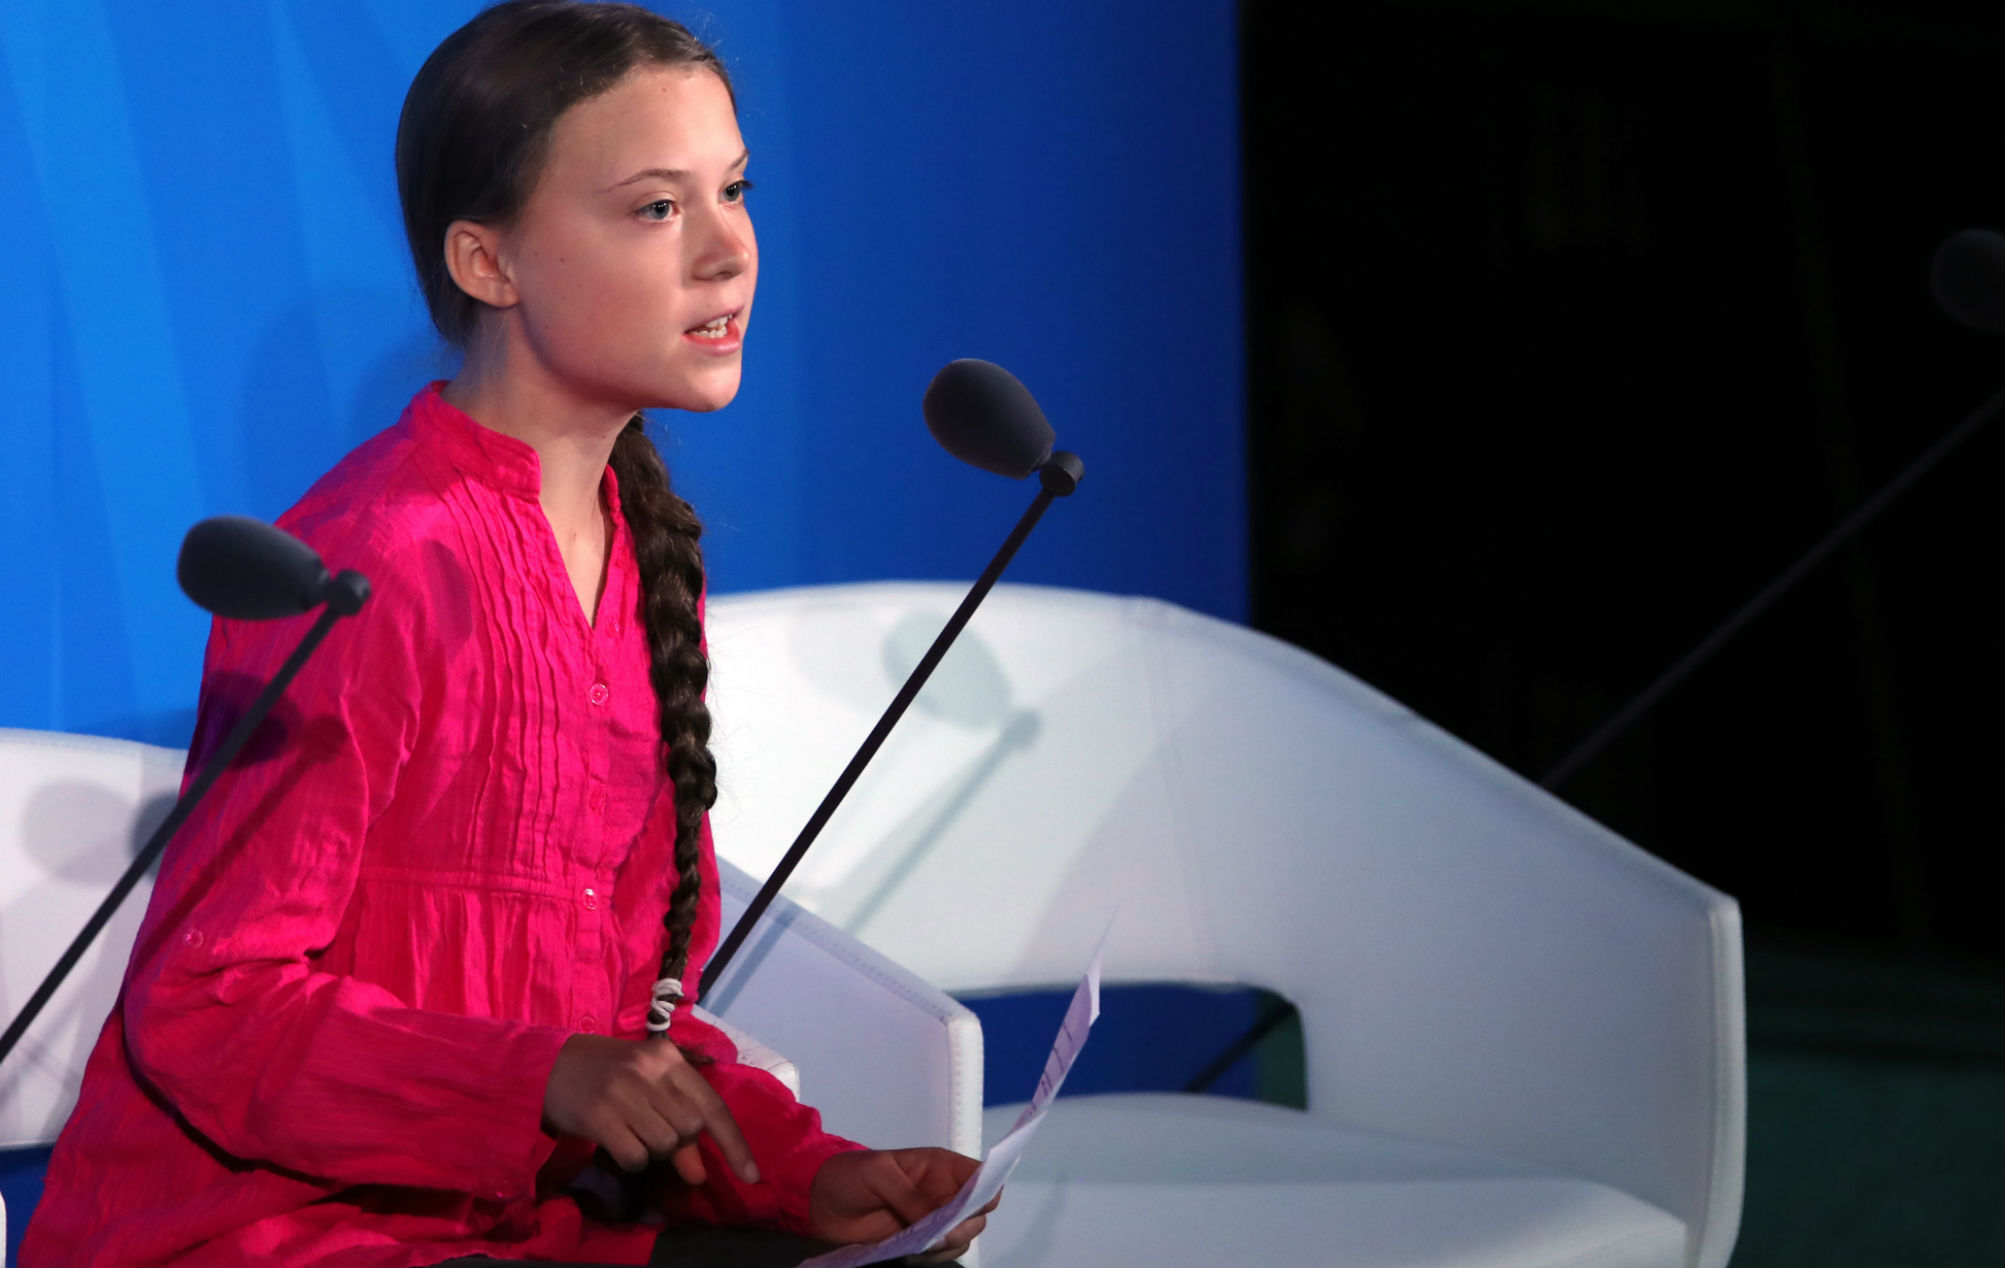 Here's Greta Thunberg's powerful UN speech mashed up with Fatboy Slim and Swedish death metal